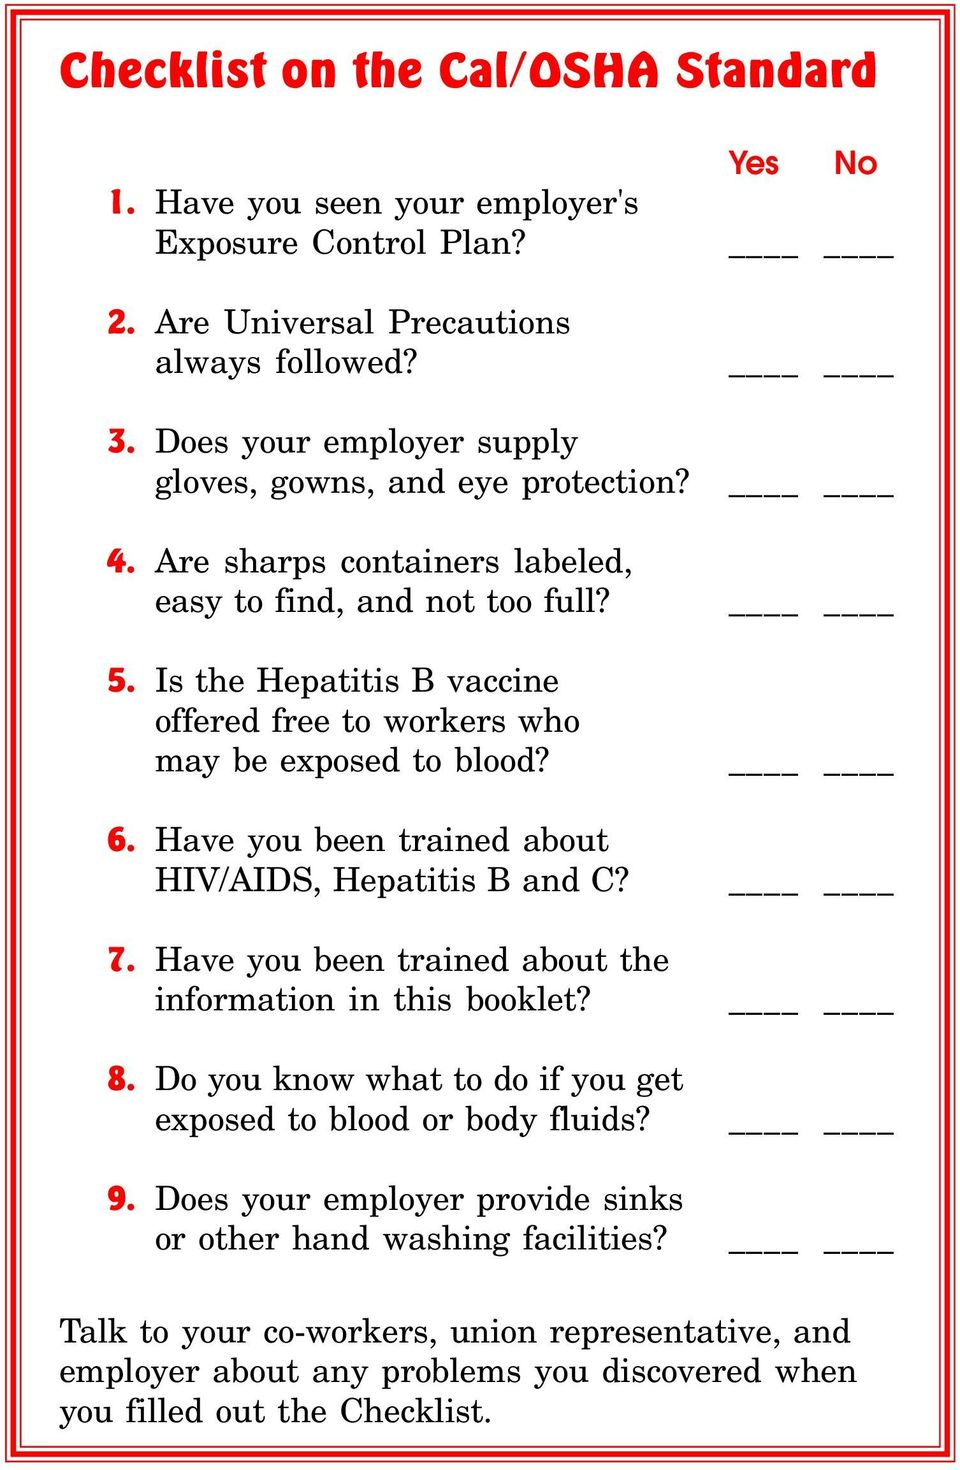 Is the Hepatitis B vaccine offered free to workers who may be exposed to blood? 6. Have you been trained about HIV/AIDS, Hepatitis B and C? 7.